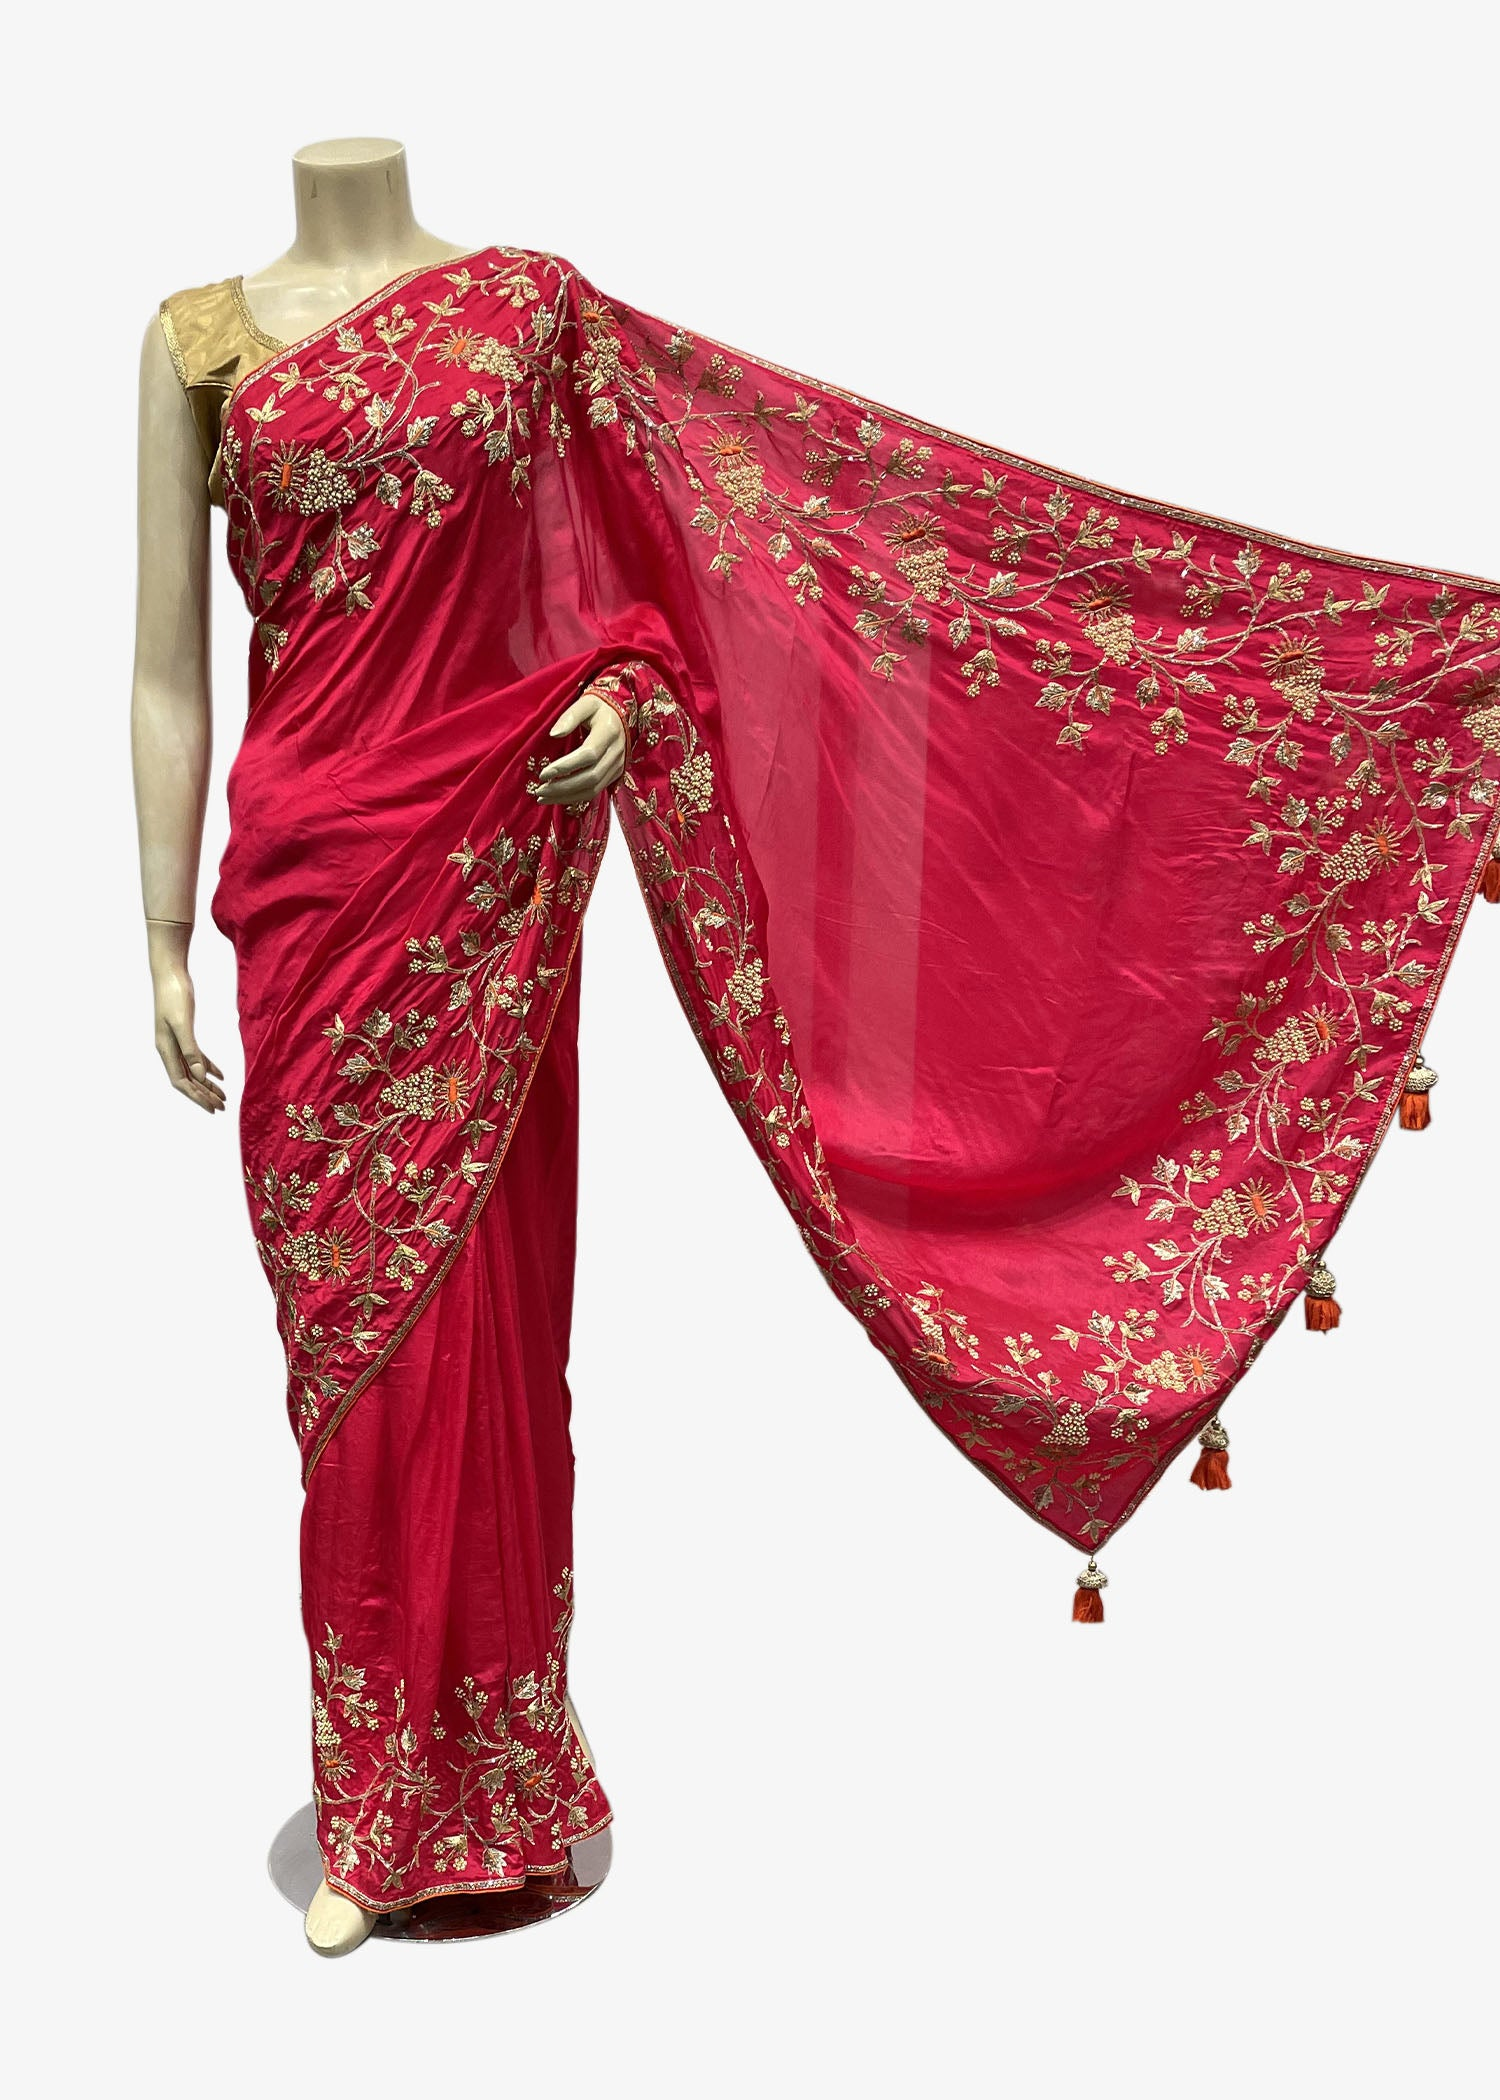 Pink Silk Saree With Resham Thread And Gold Zardozi Embroidery